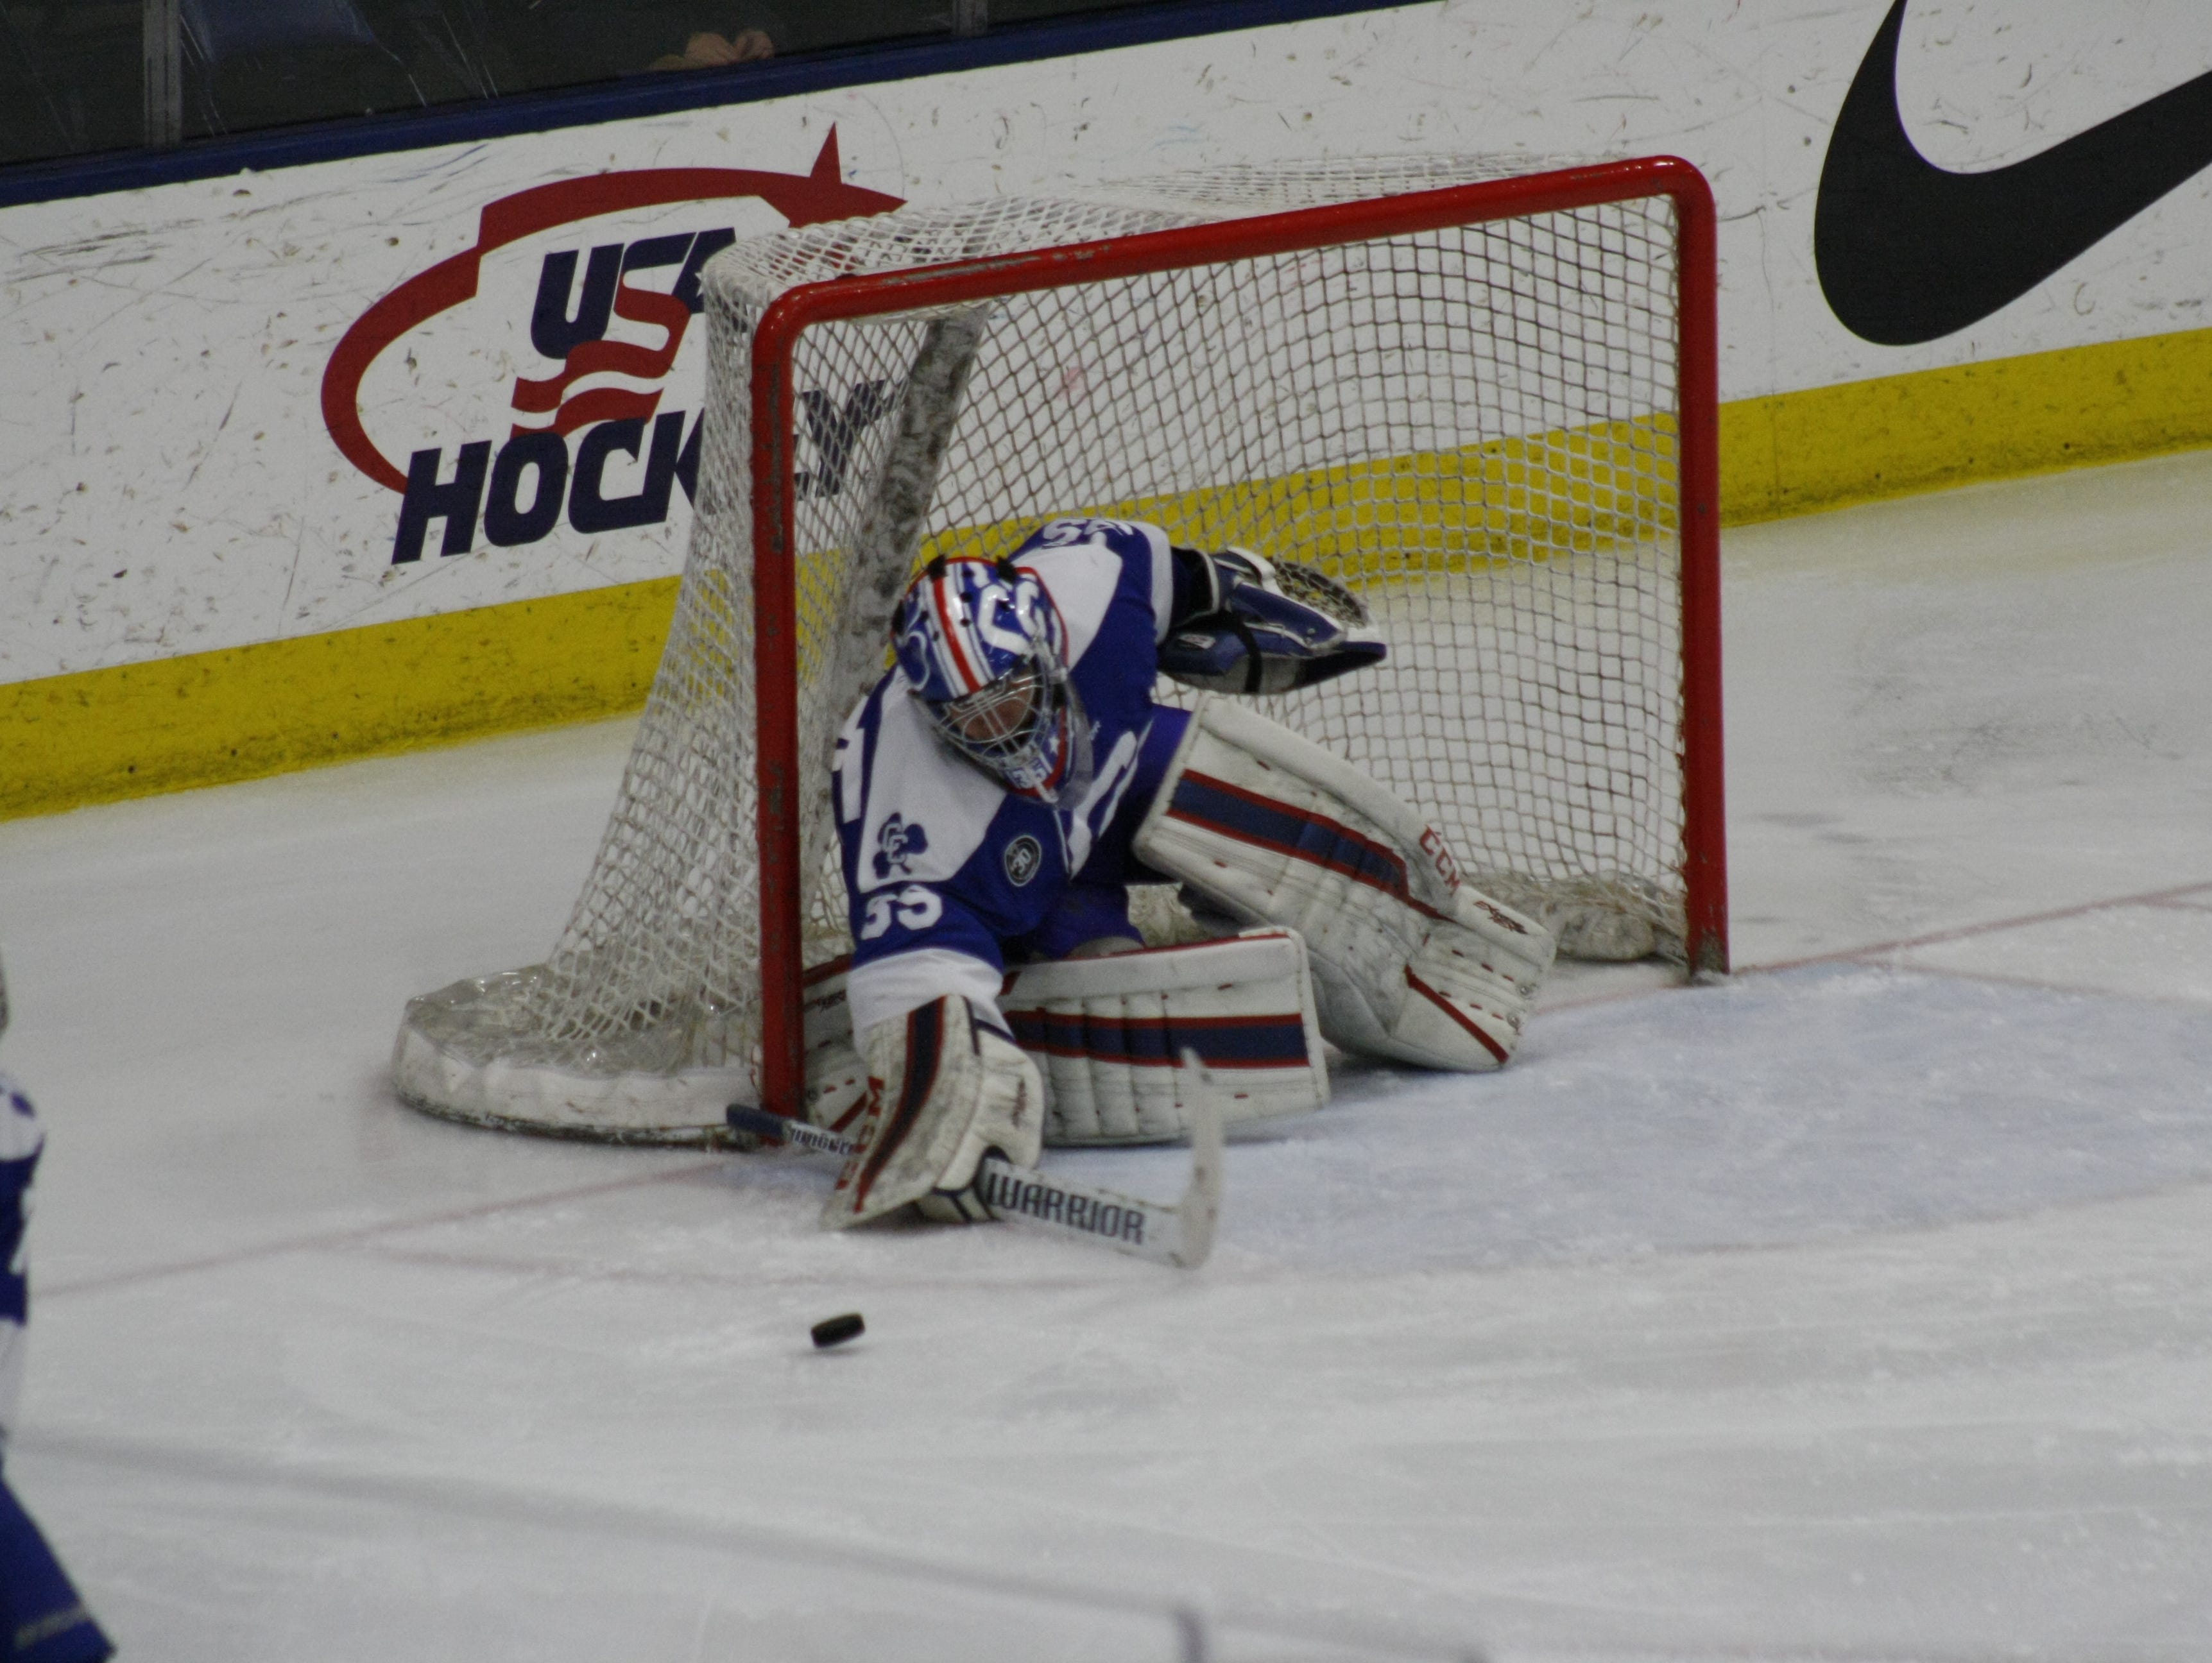 Novi Detroit Catholic Central goalie Sean Finstrom knocks away a Grandville shot during Friday's Division 1 state semifinal match at USA Hockey Arena in Plymouth.